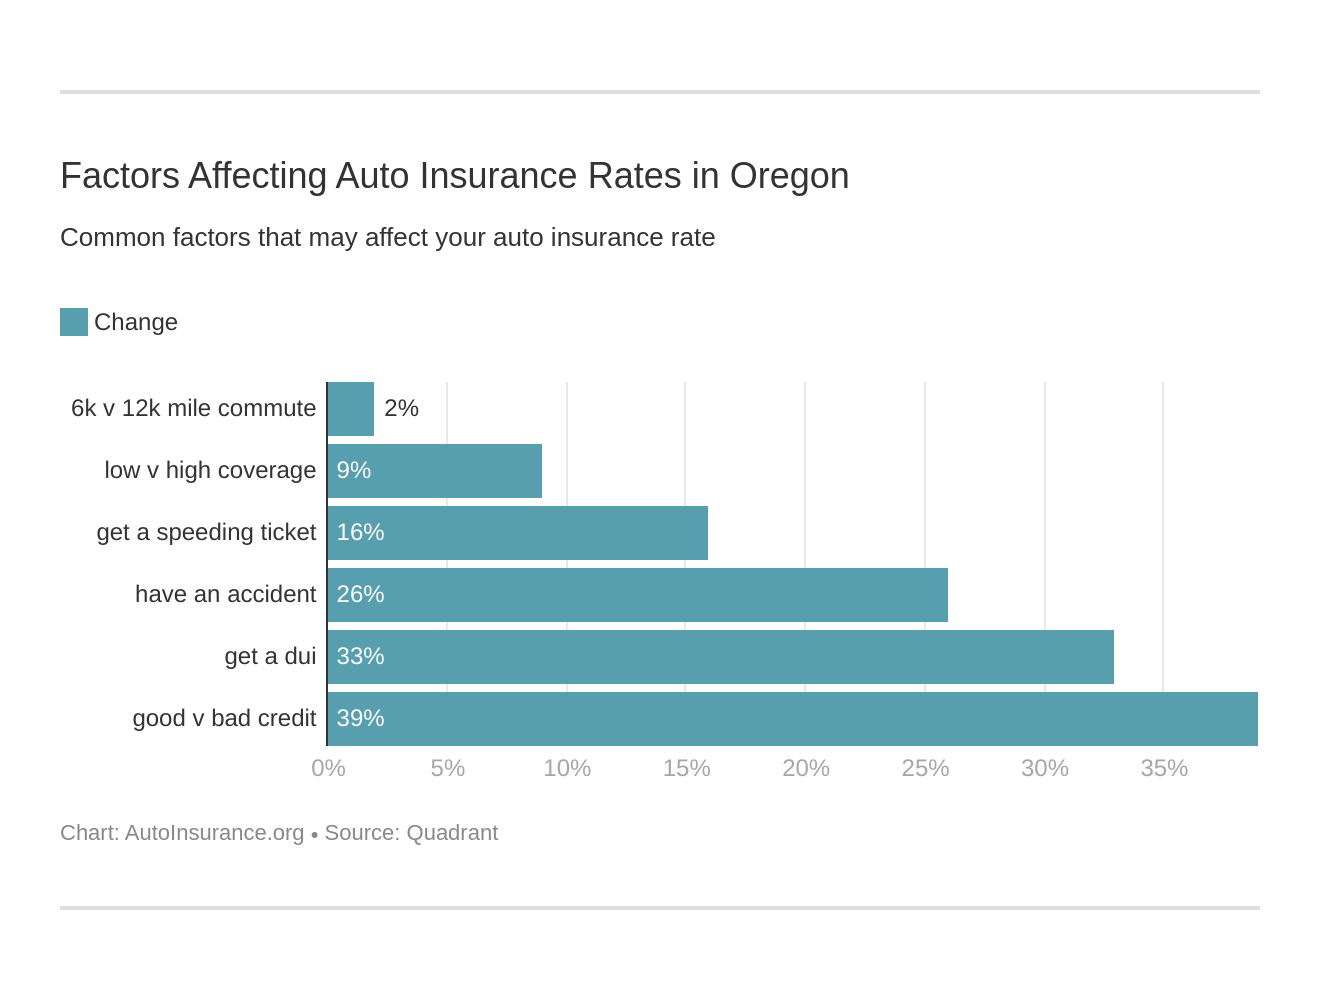 Factors Affecting Auto Insurance Rates in Oregon